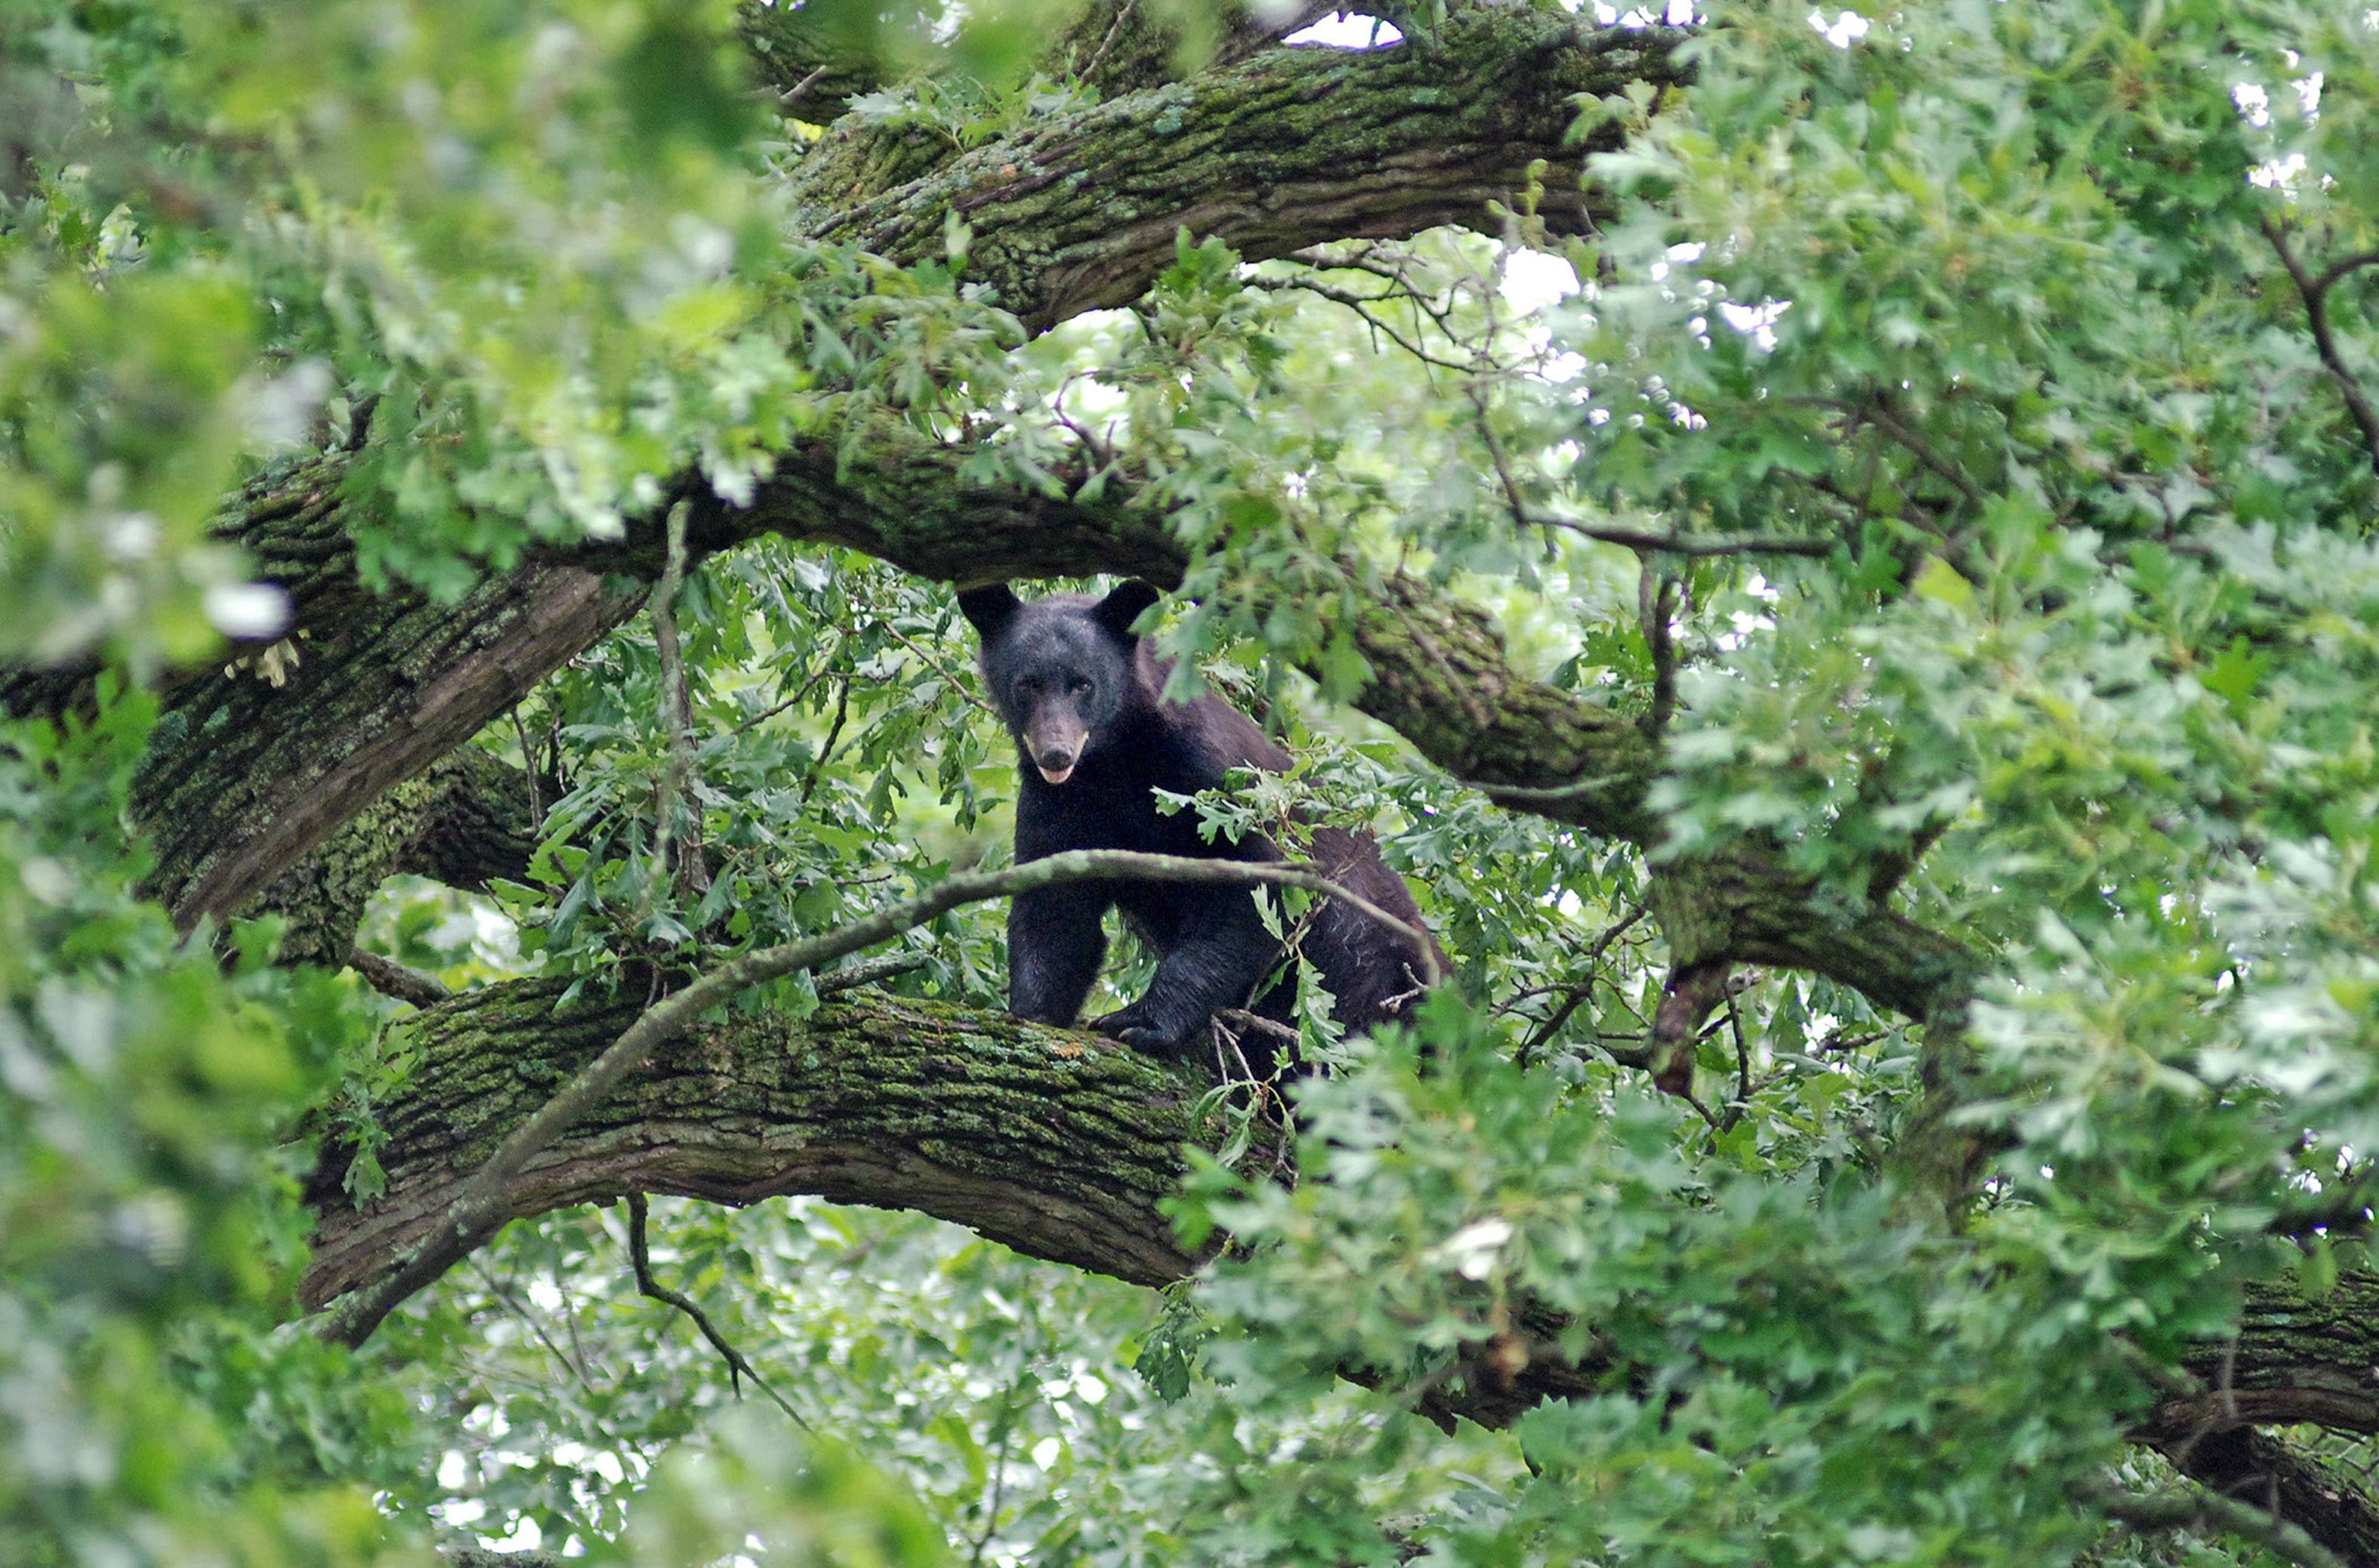 A young black bear rests in a tree Wednesday in Mount Morris.